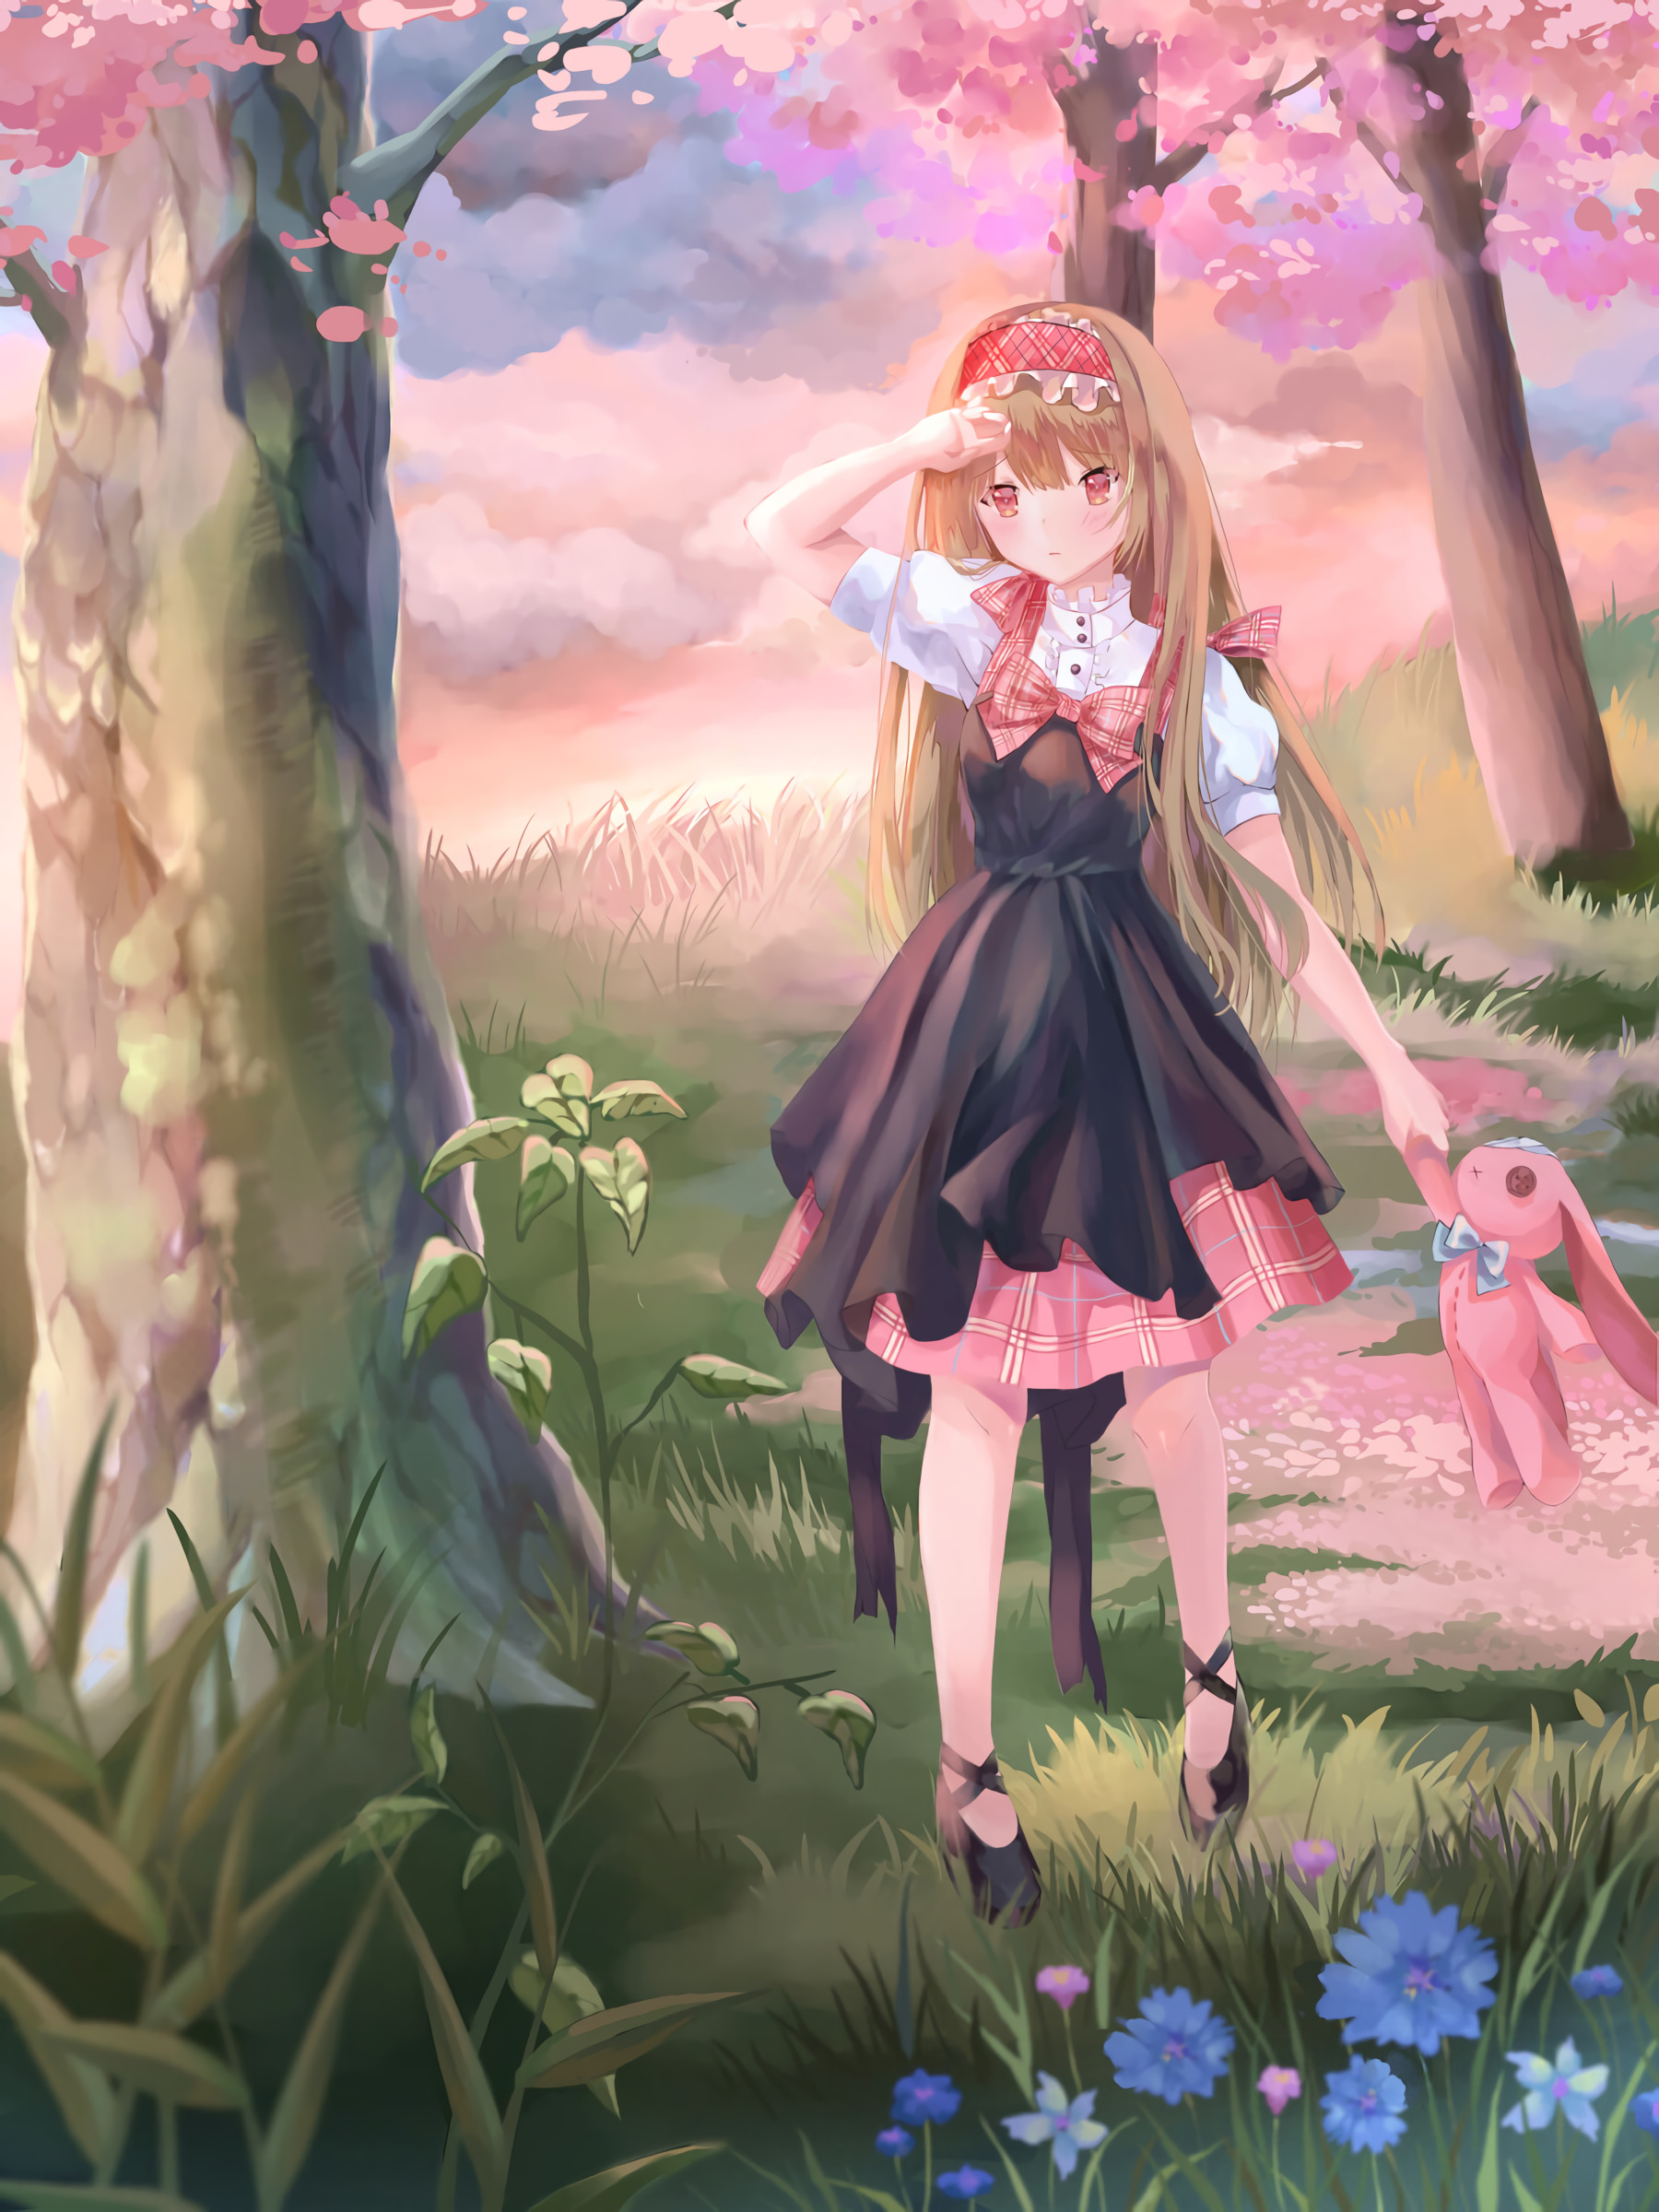 73607 download wallpaper Anime, Art, Toy, Girl screensavers and pictures for free